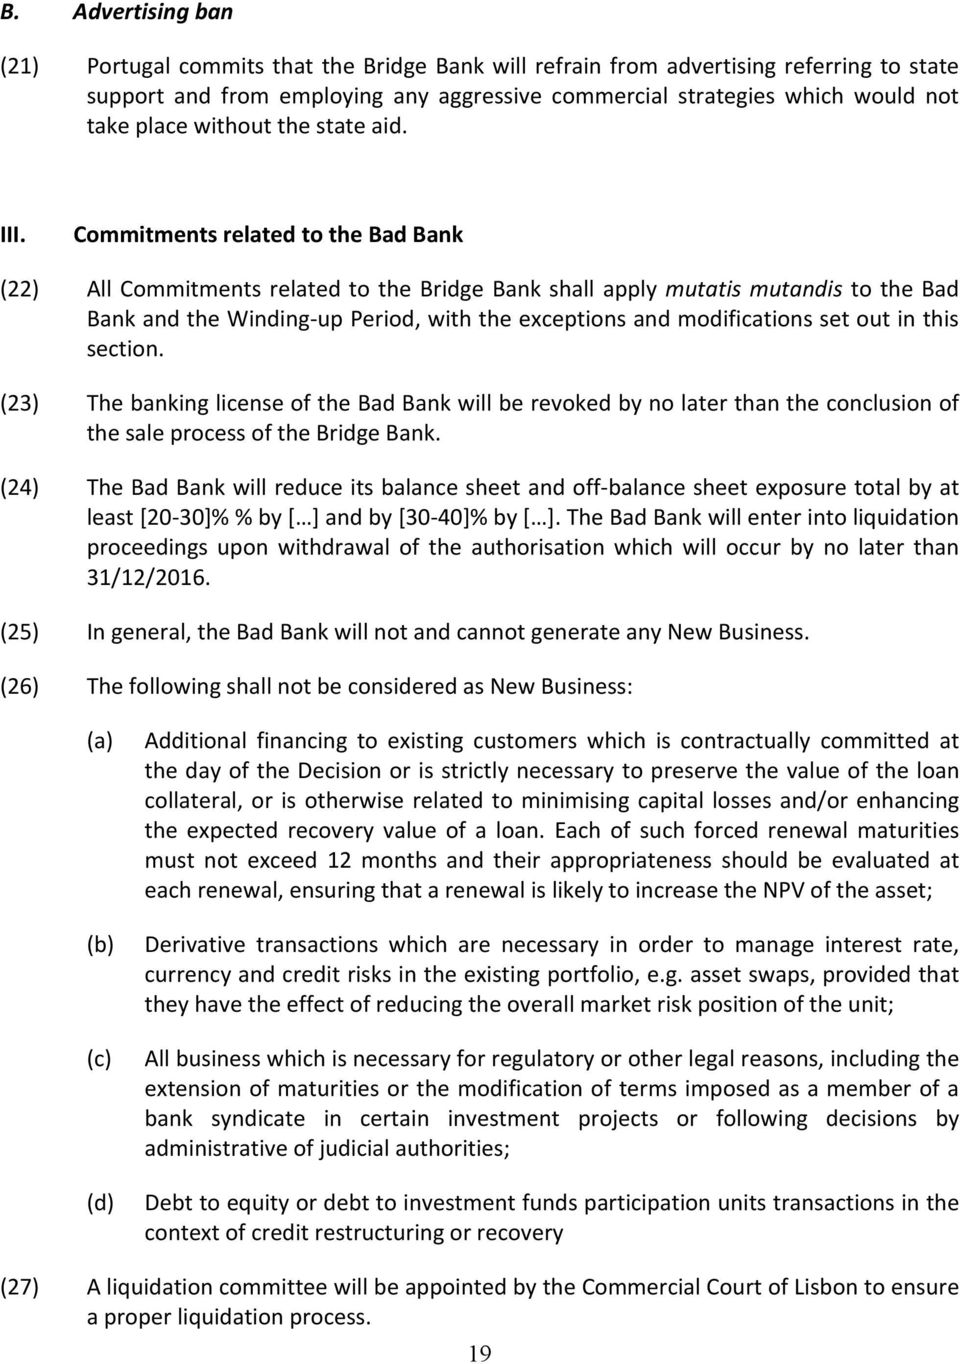 Commitments related to the Bad Bank (22) All Commitments related to the Bridge Bank shall apply mutatis mutandis to the Bad Bank and the Winding-up Period, with the exceptions and modifications set